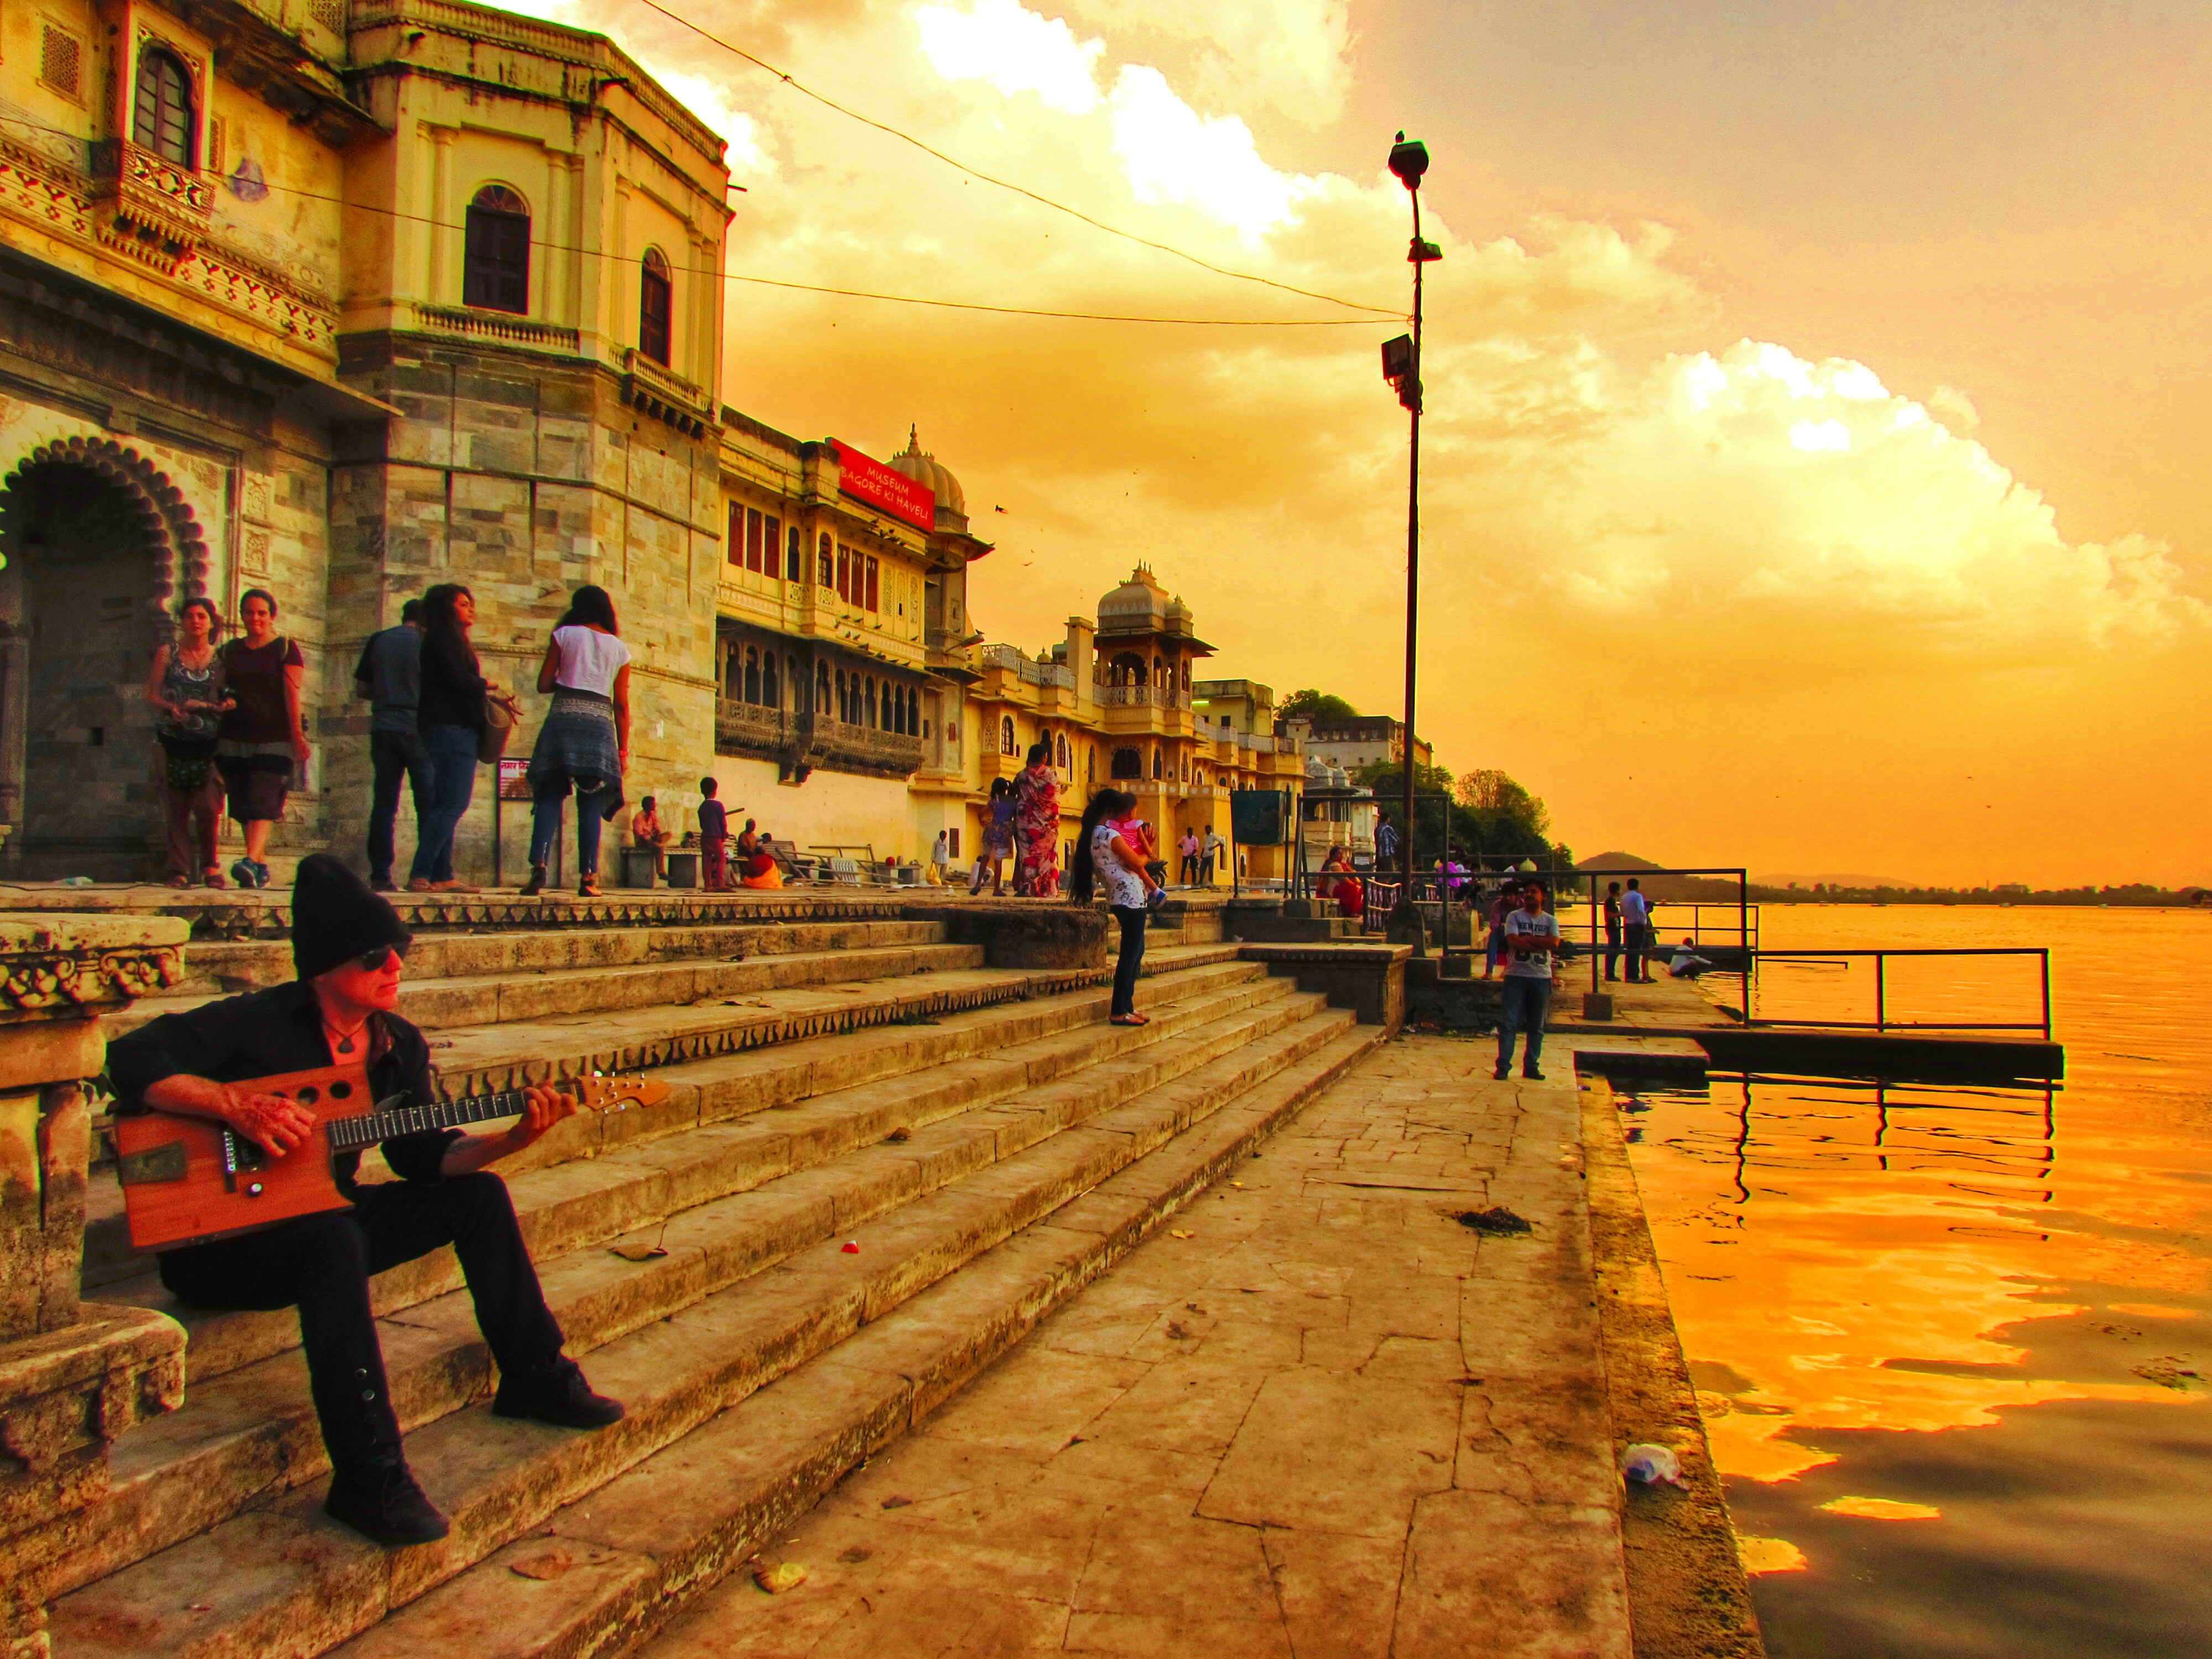 Two reflections of Gangaur Ghat : What do YOU think?